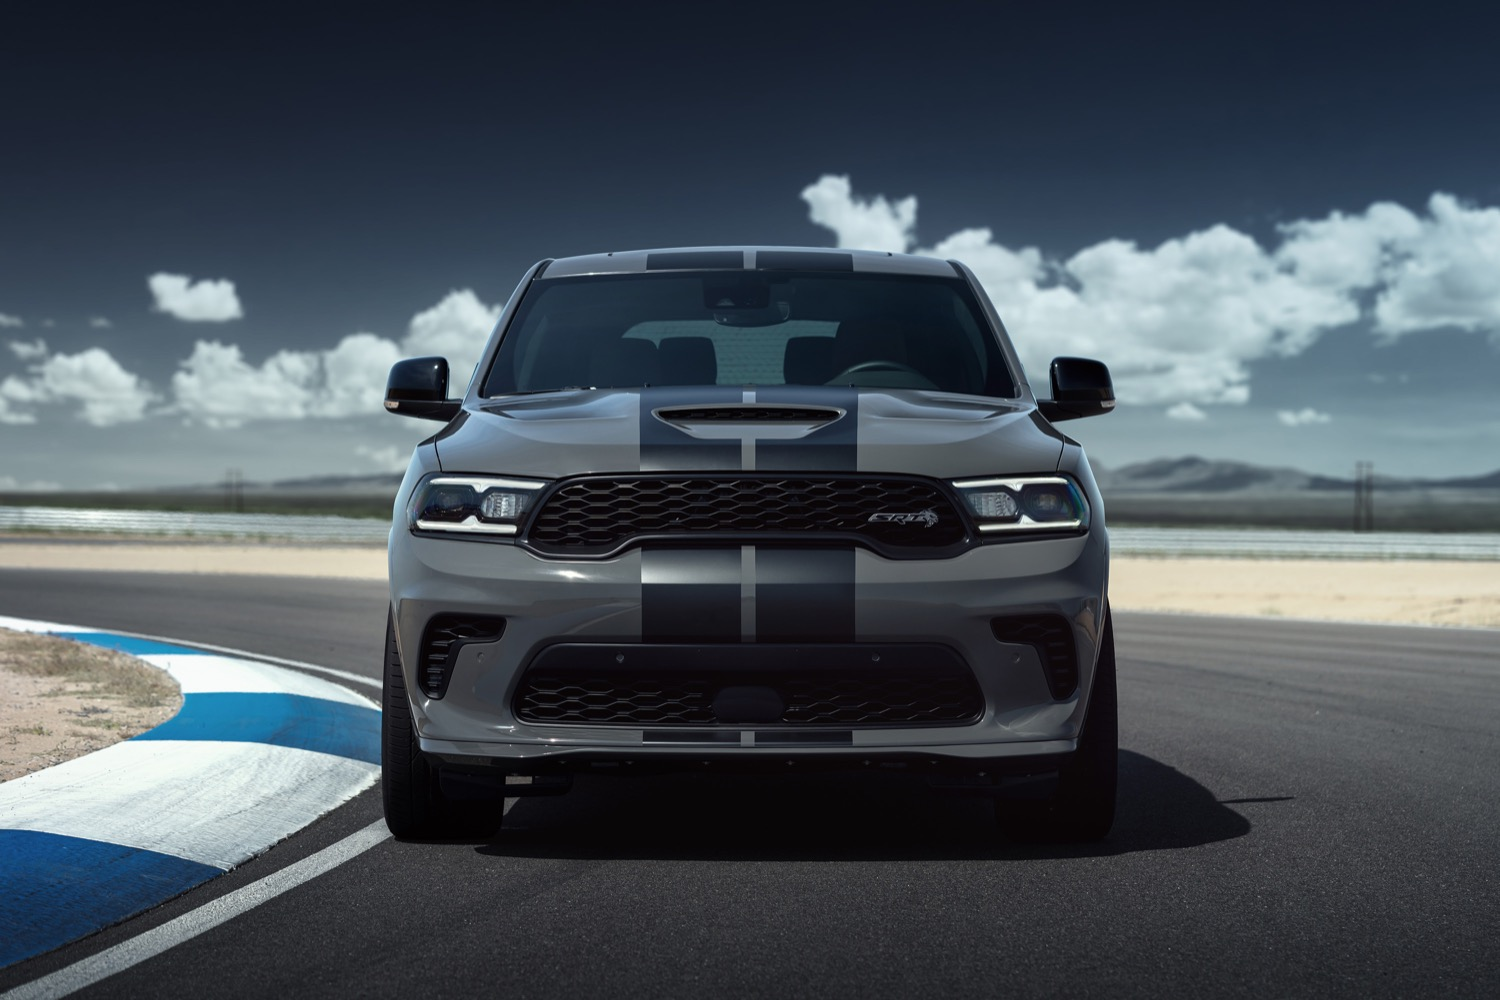 2022 Dodge Durango Srt Hellcat Top Speed Specs